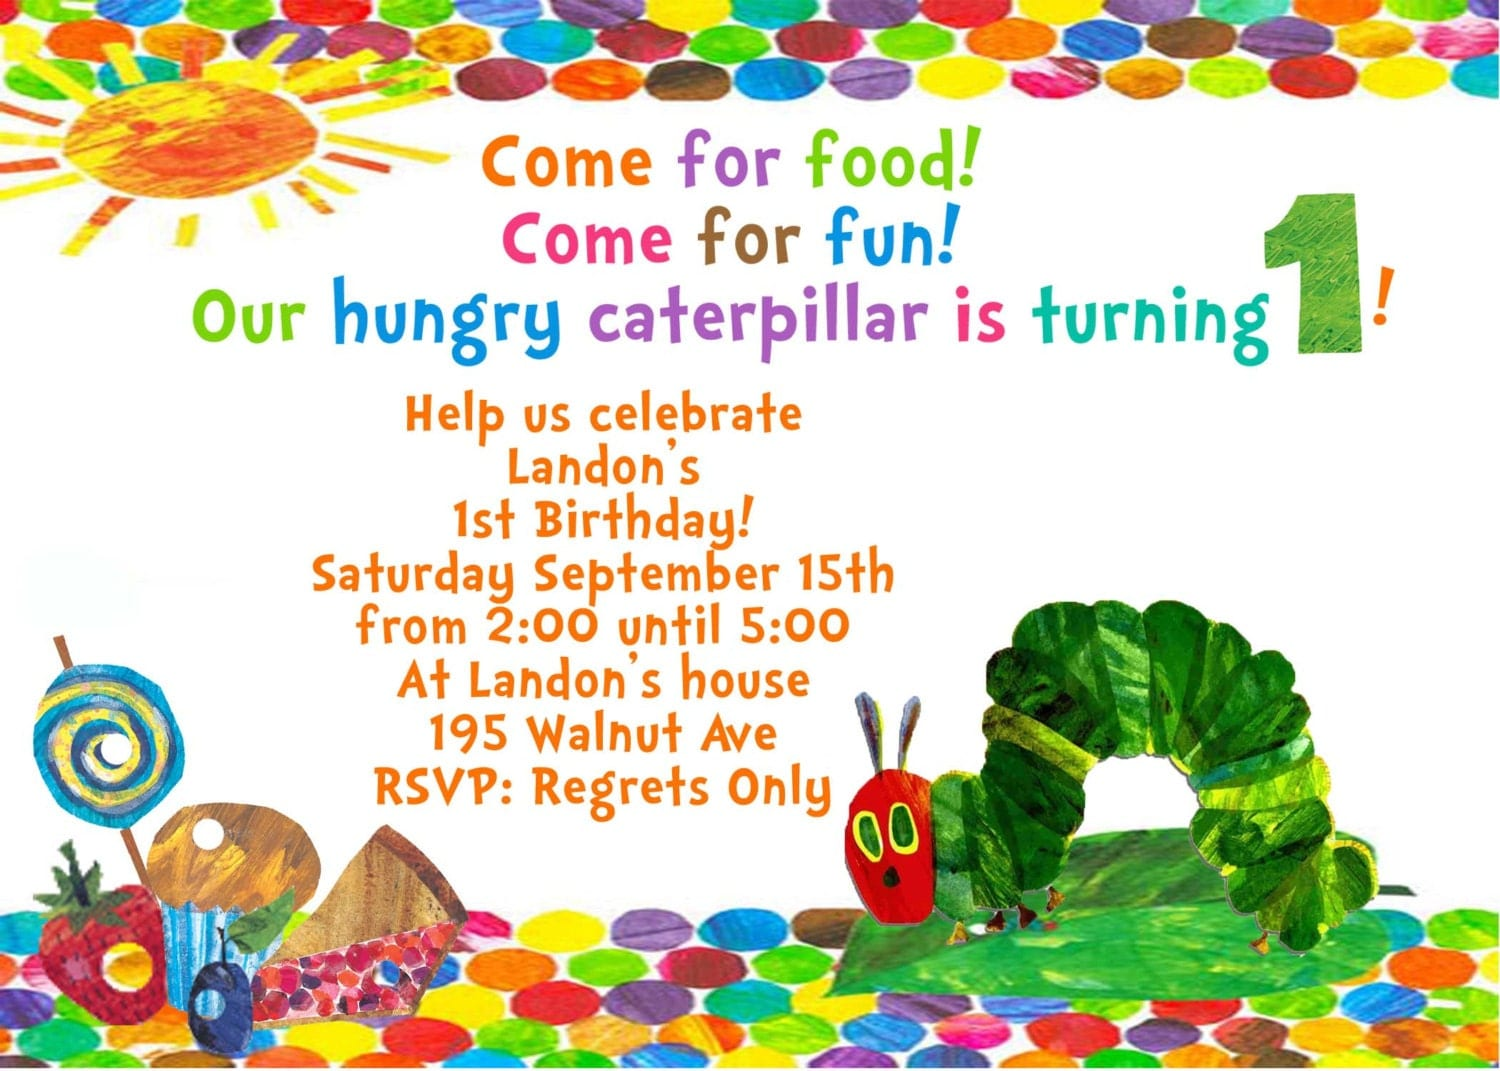 The Very Hungry Caterpillar, by Eric Carle Birthday Party Ideas ...